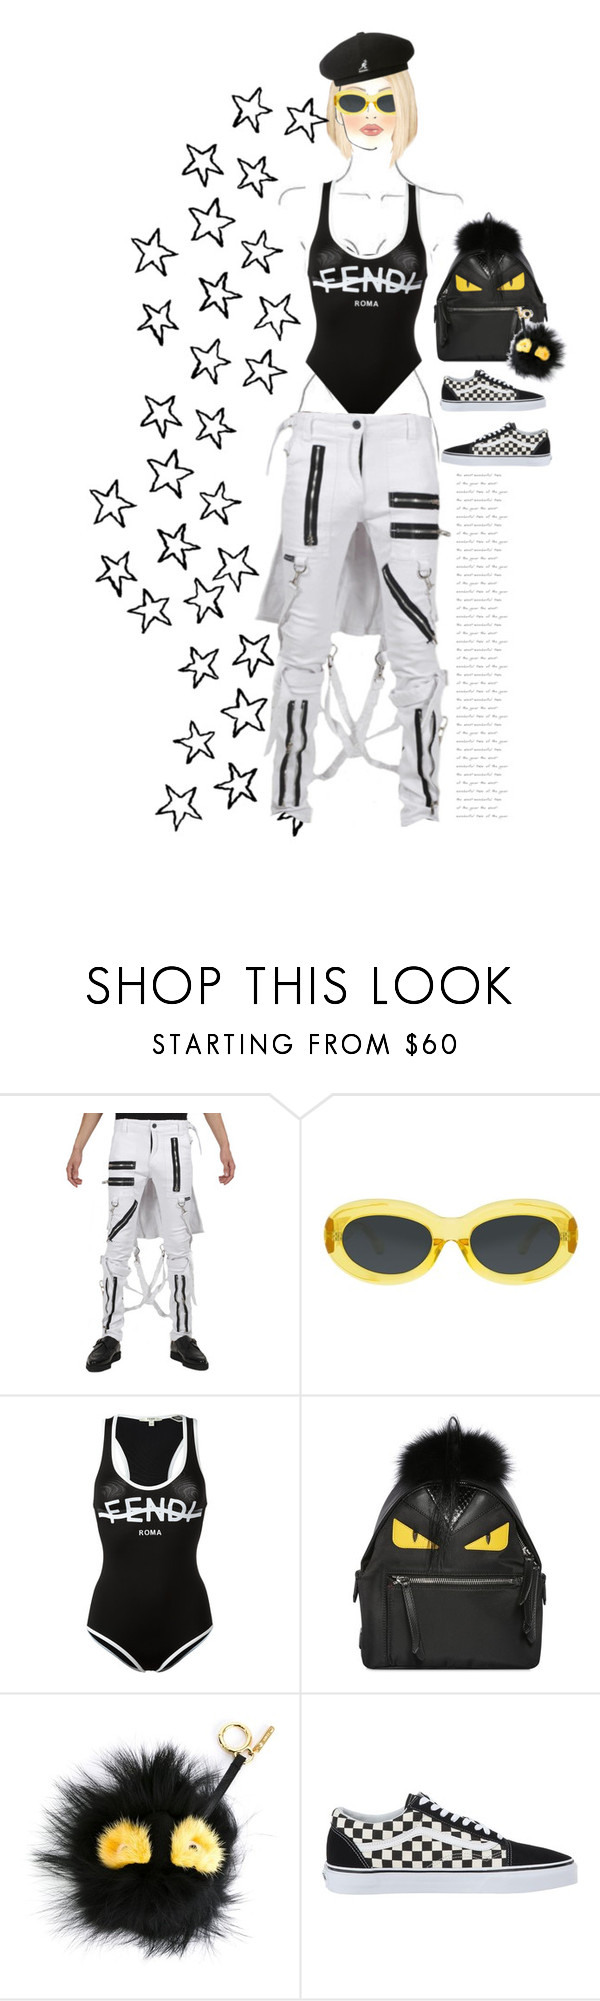 """End of the road"" by johnrefos ❤ liked on Polyvore featuring M.A.C, Tripp, Dries Van Noten, Fendi, Vans and kangol"